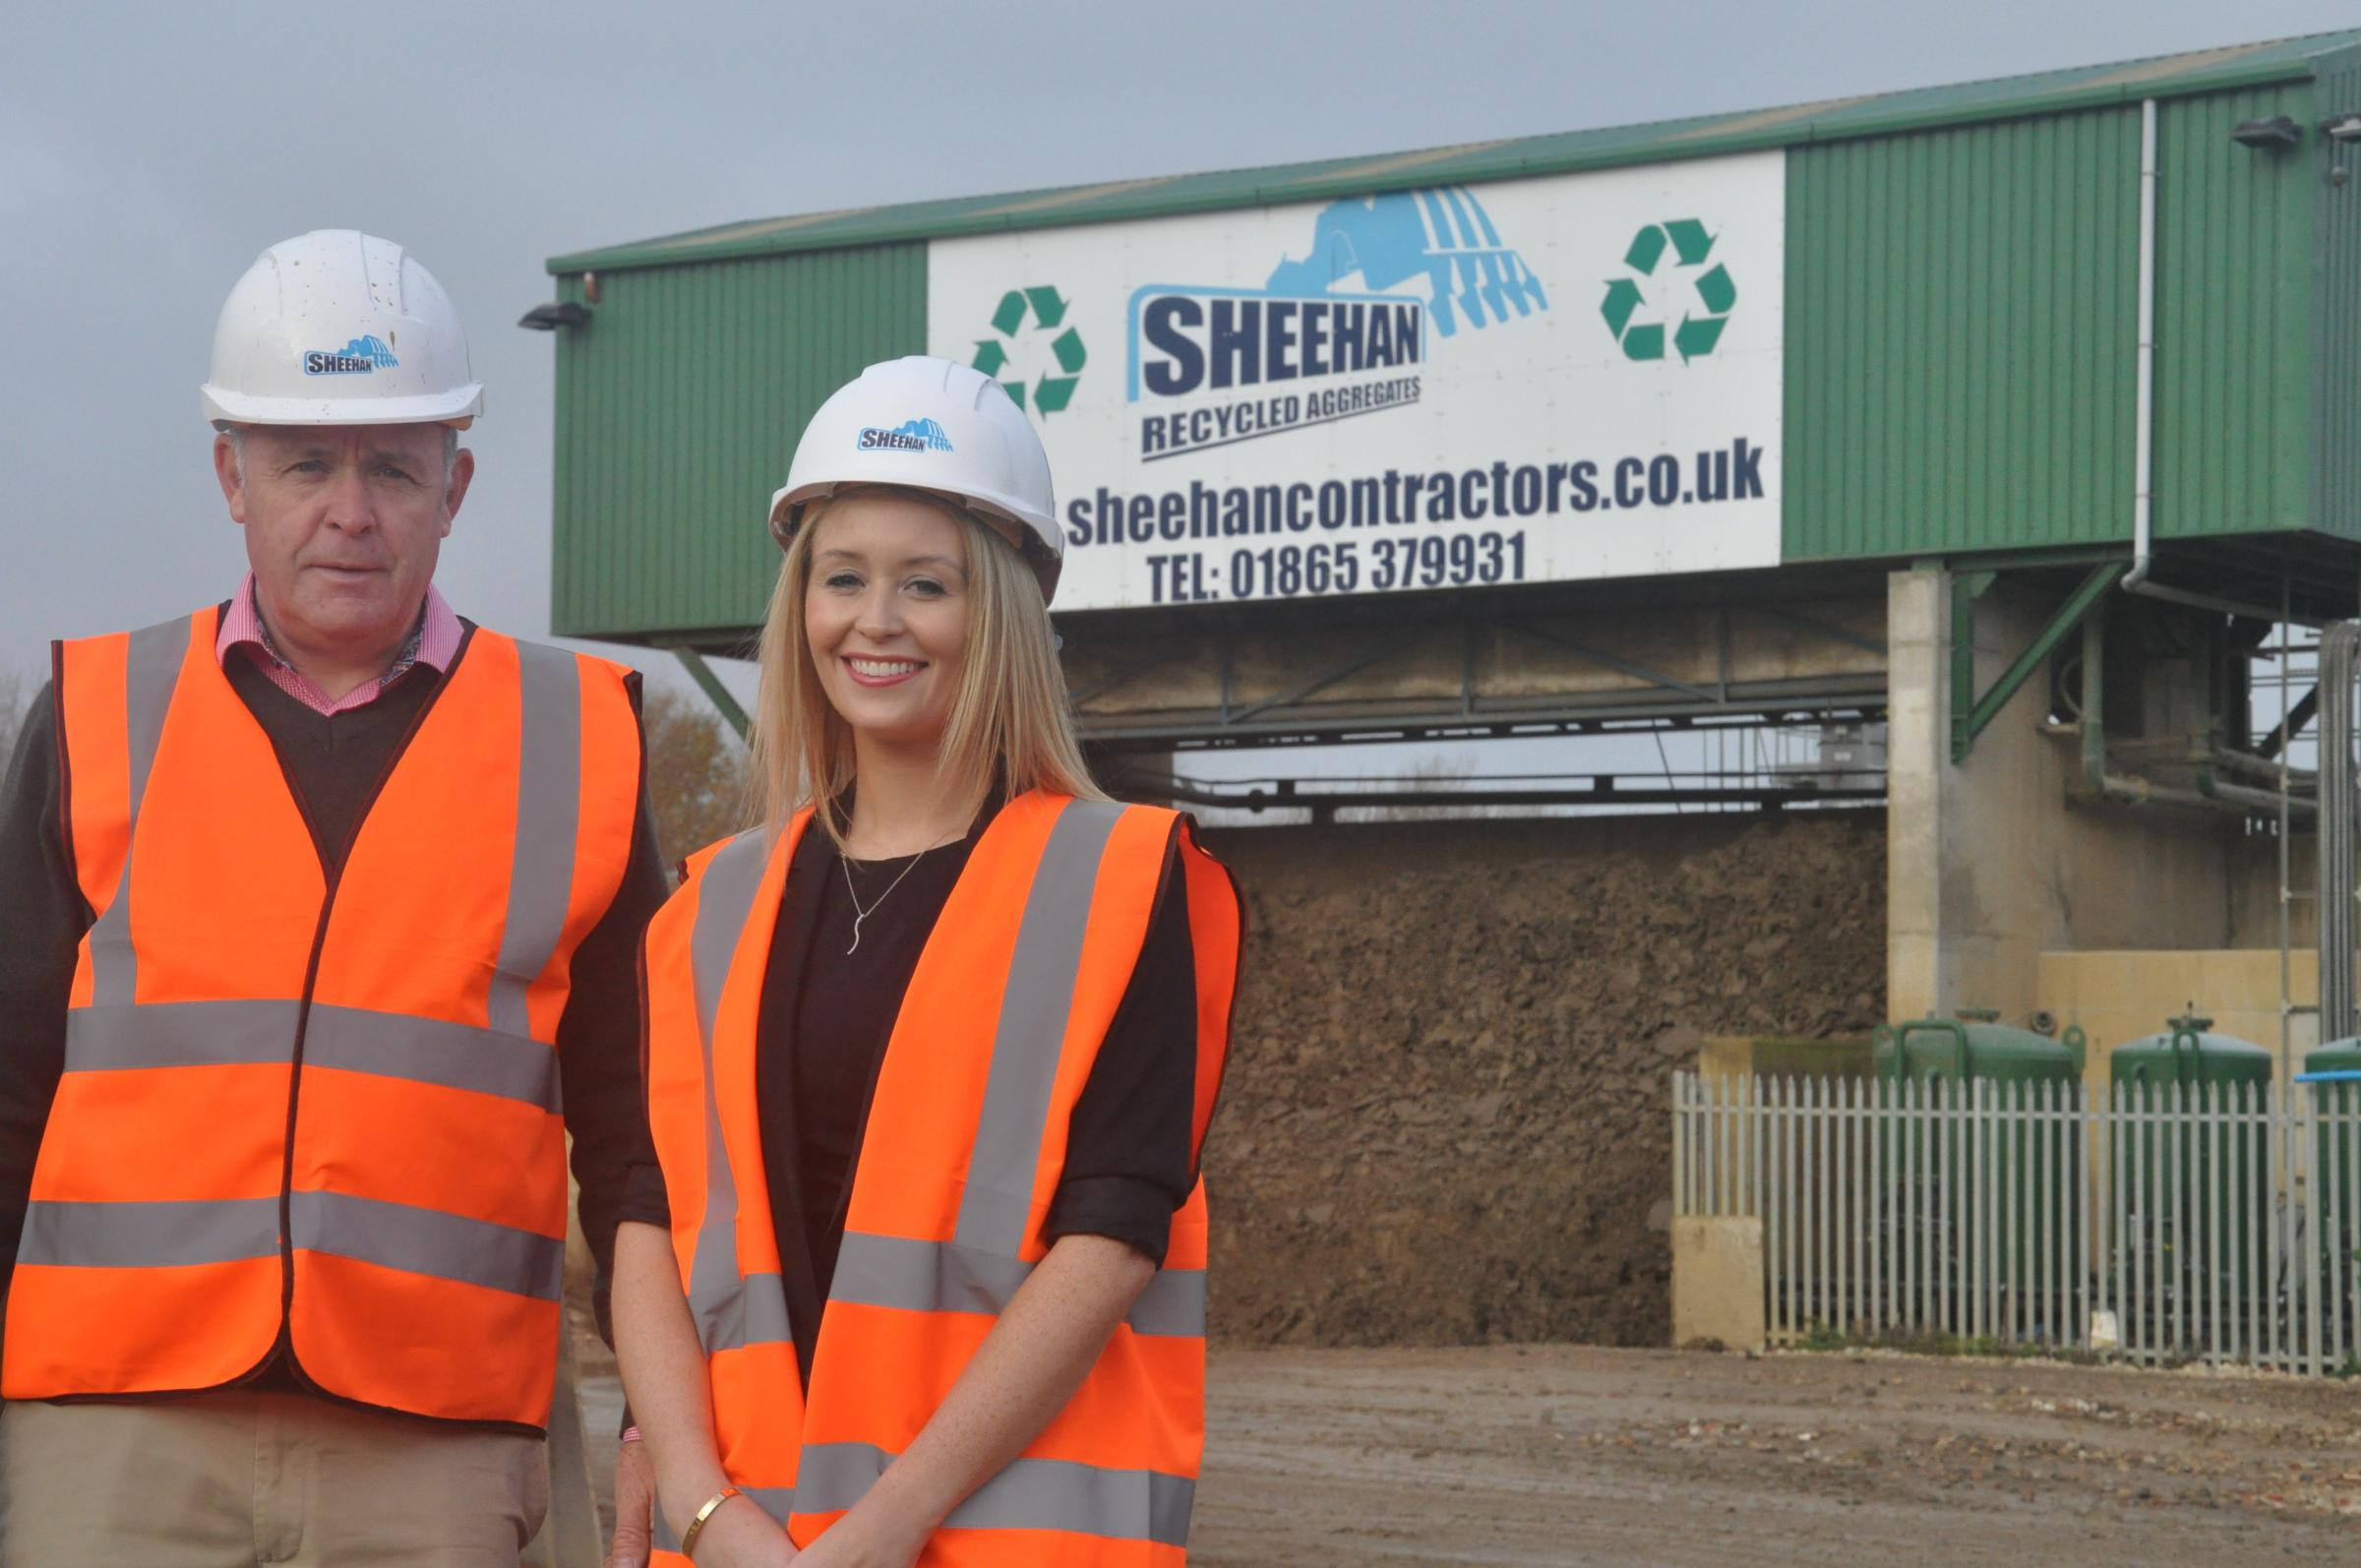 Chris Sheehan, managing director of the Sheehan Group, and Tara Sheehan, finance director, at the company's recycling plant in Stanton Harcourt, near Oxford. Picture Greig Box Turnbull